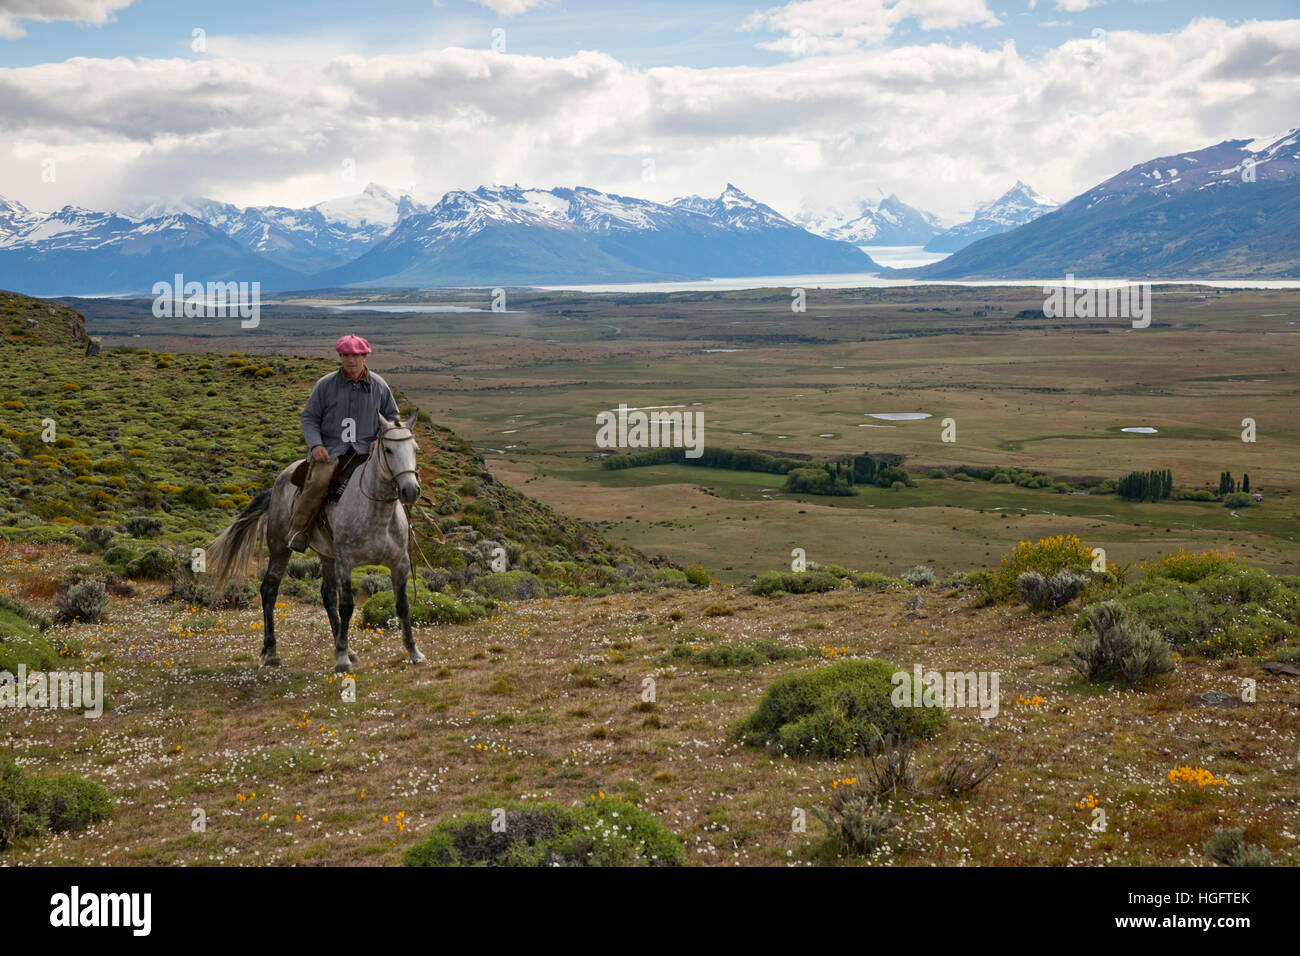 Gaucho on horseback at Estancia Alta Vista with the Andes and Perito Moreno Glacier, El Calafate, Patagonia, Argentina - Stock Image